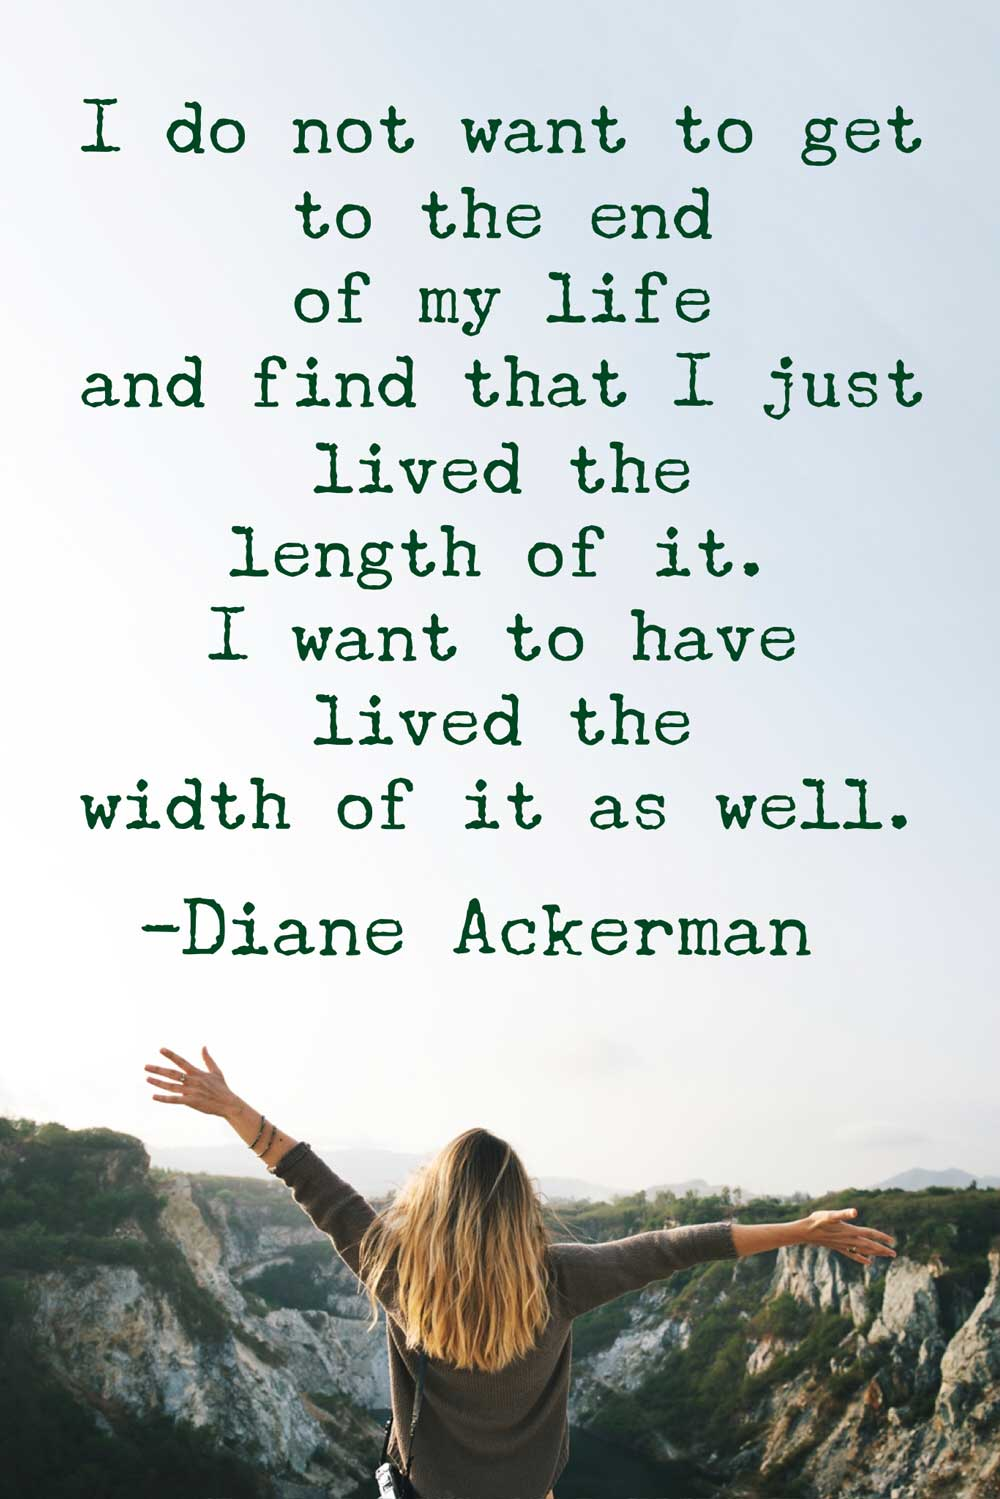 """I do not want to get to the end of my life and find that I just lived the length of it. I want to have lived the width of it as well."" -Diane Ackerman"